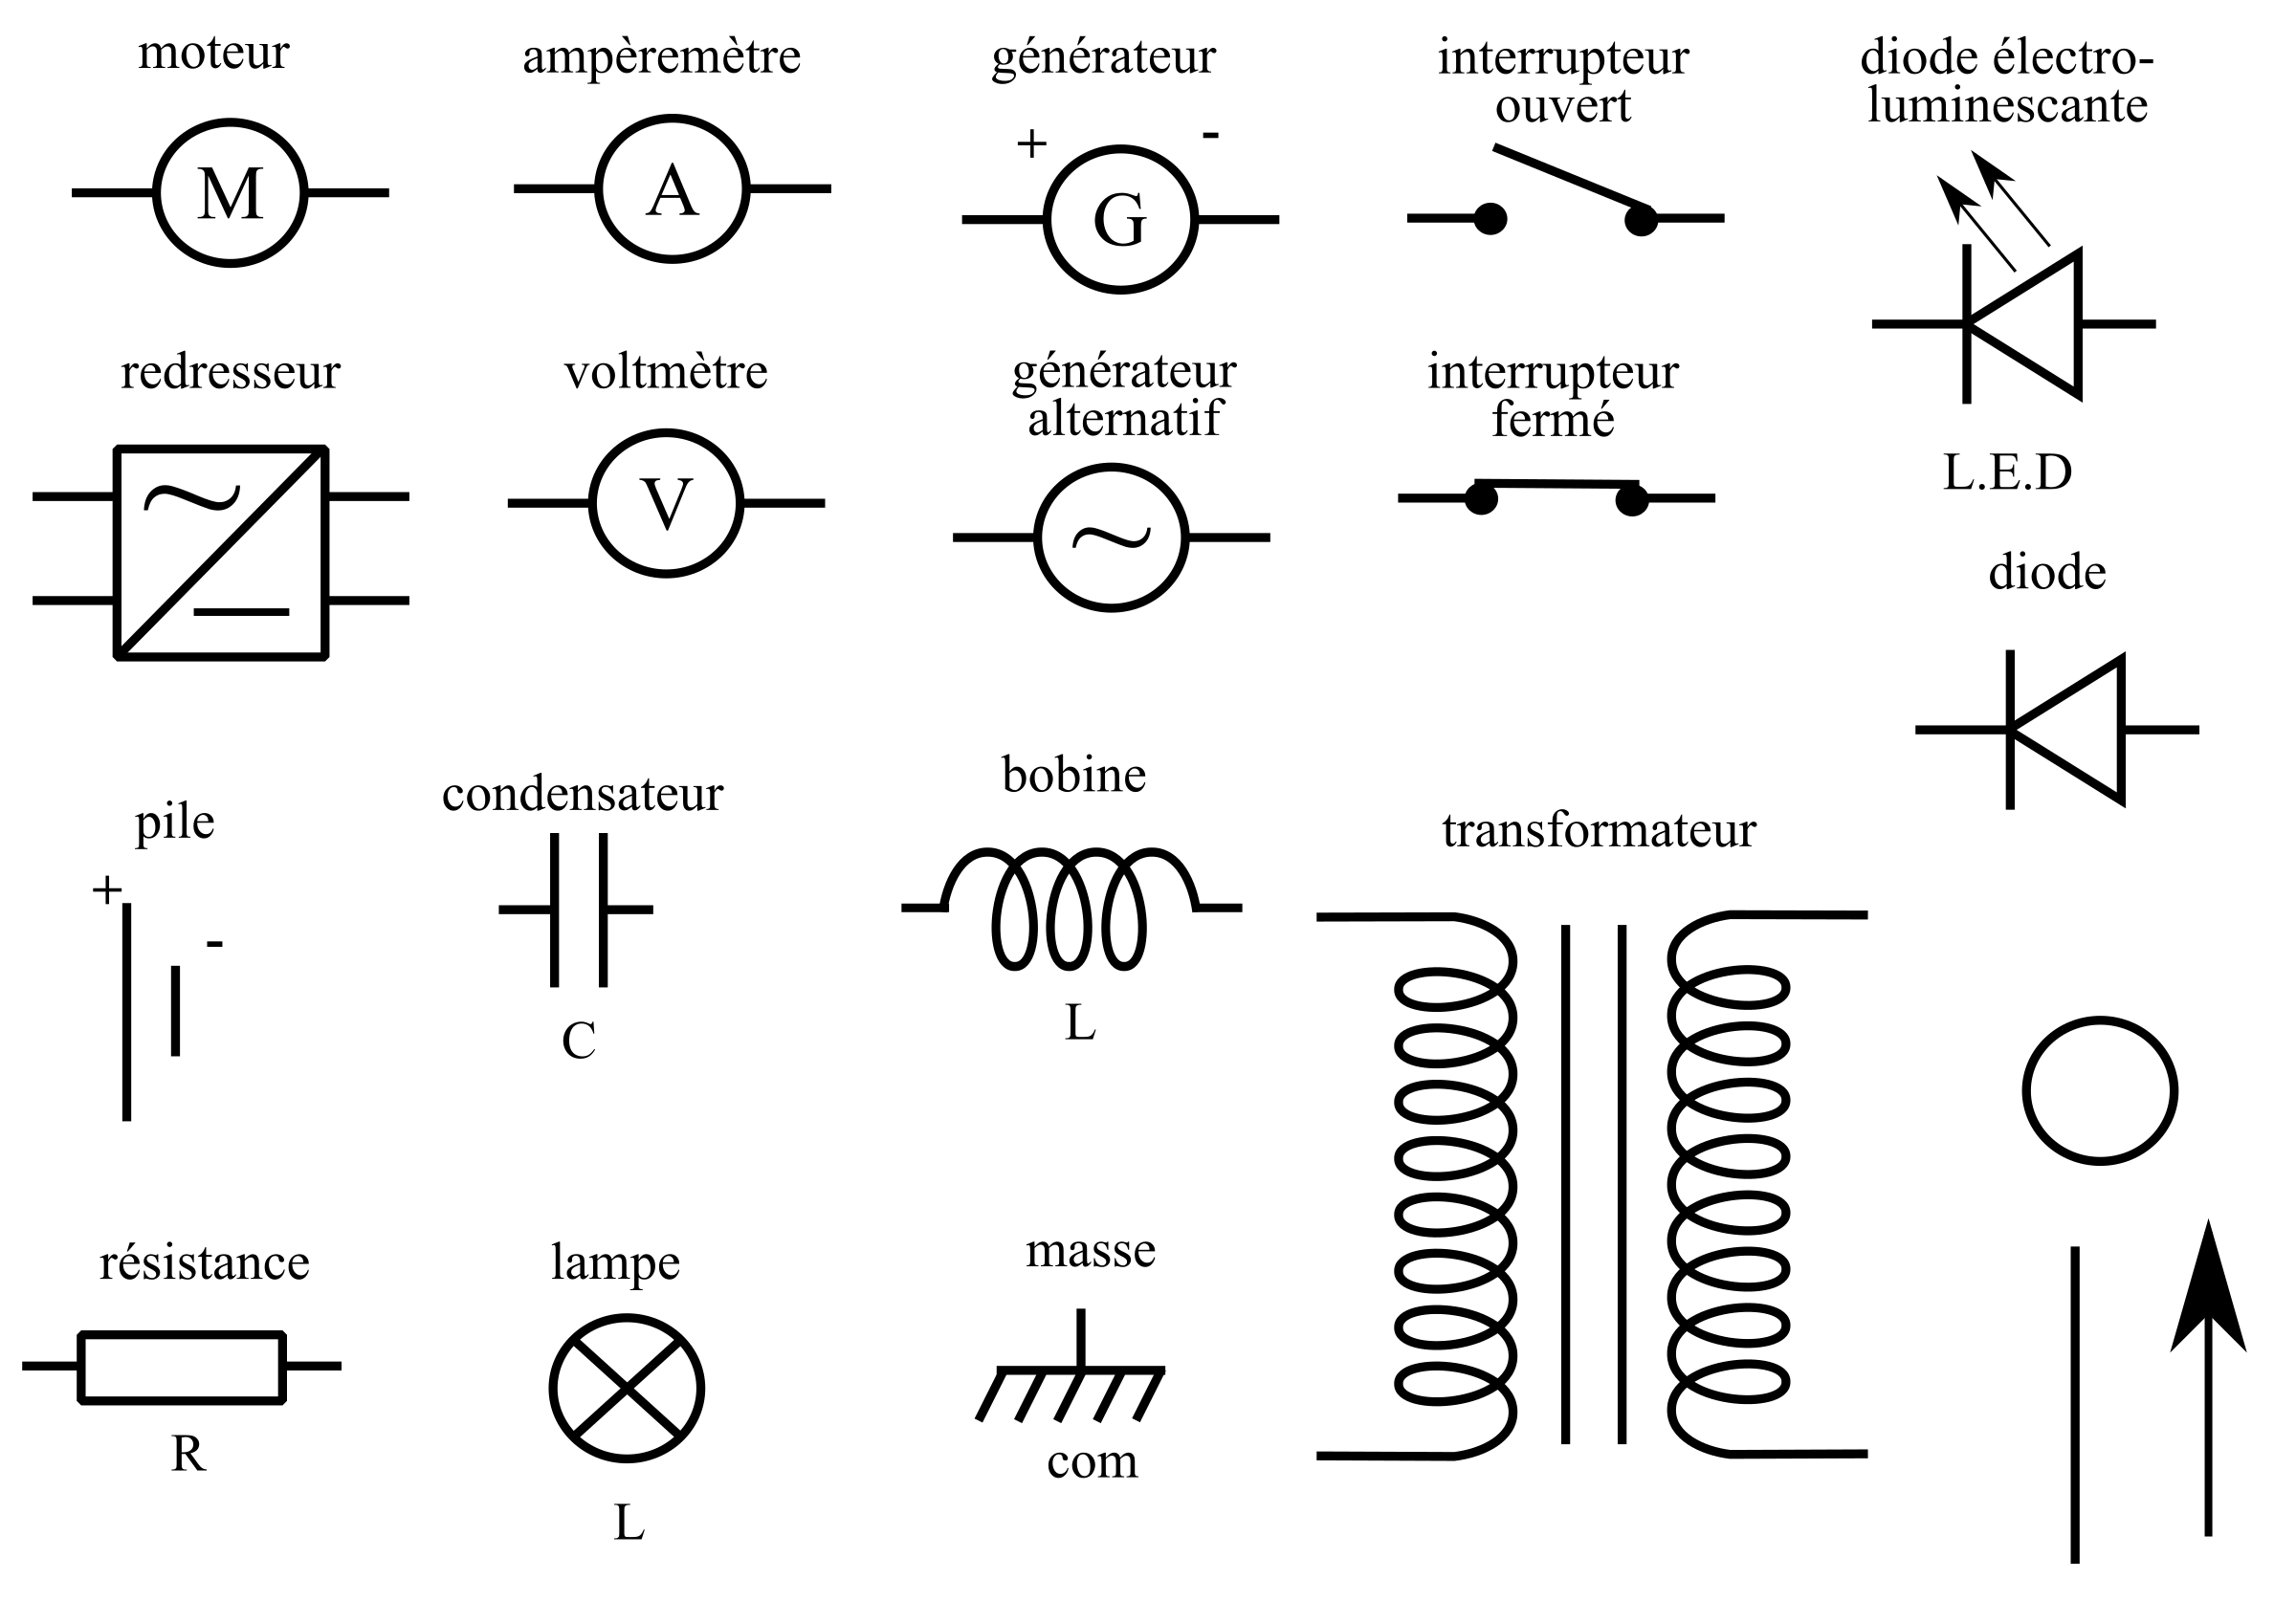 Svg symbols circuit. Clipart electricity components big